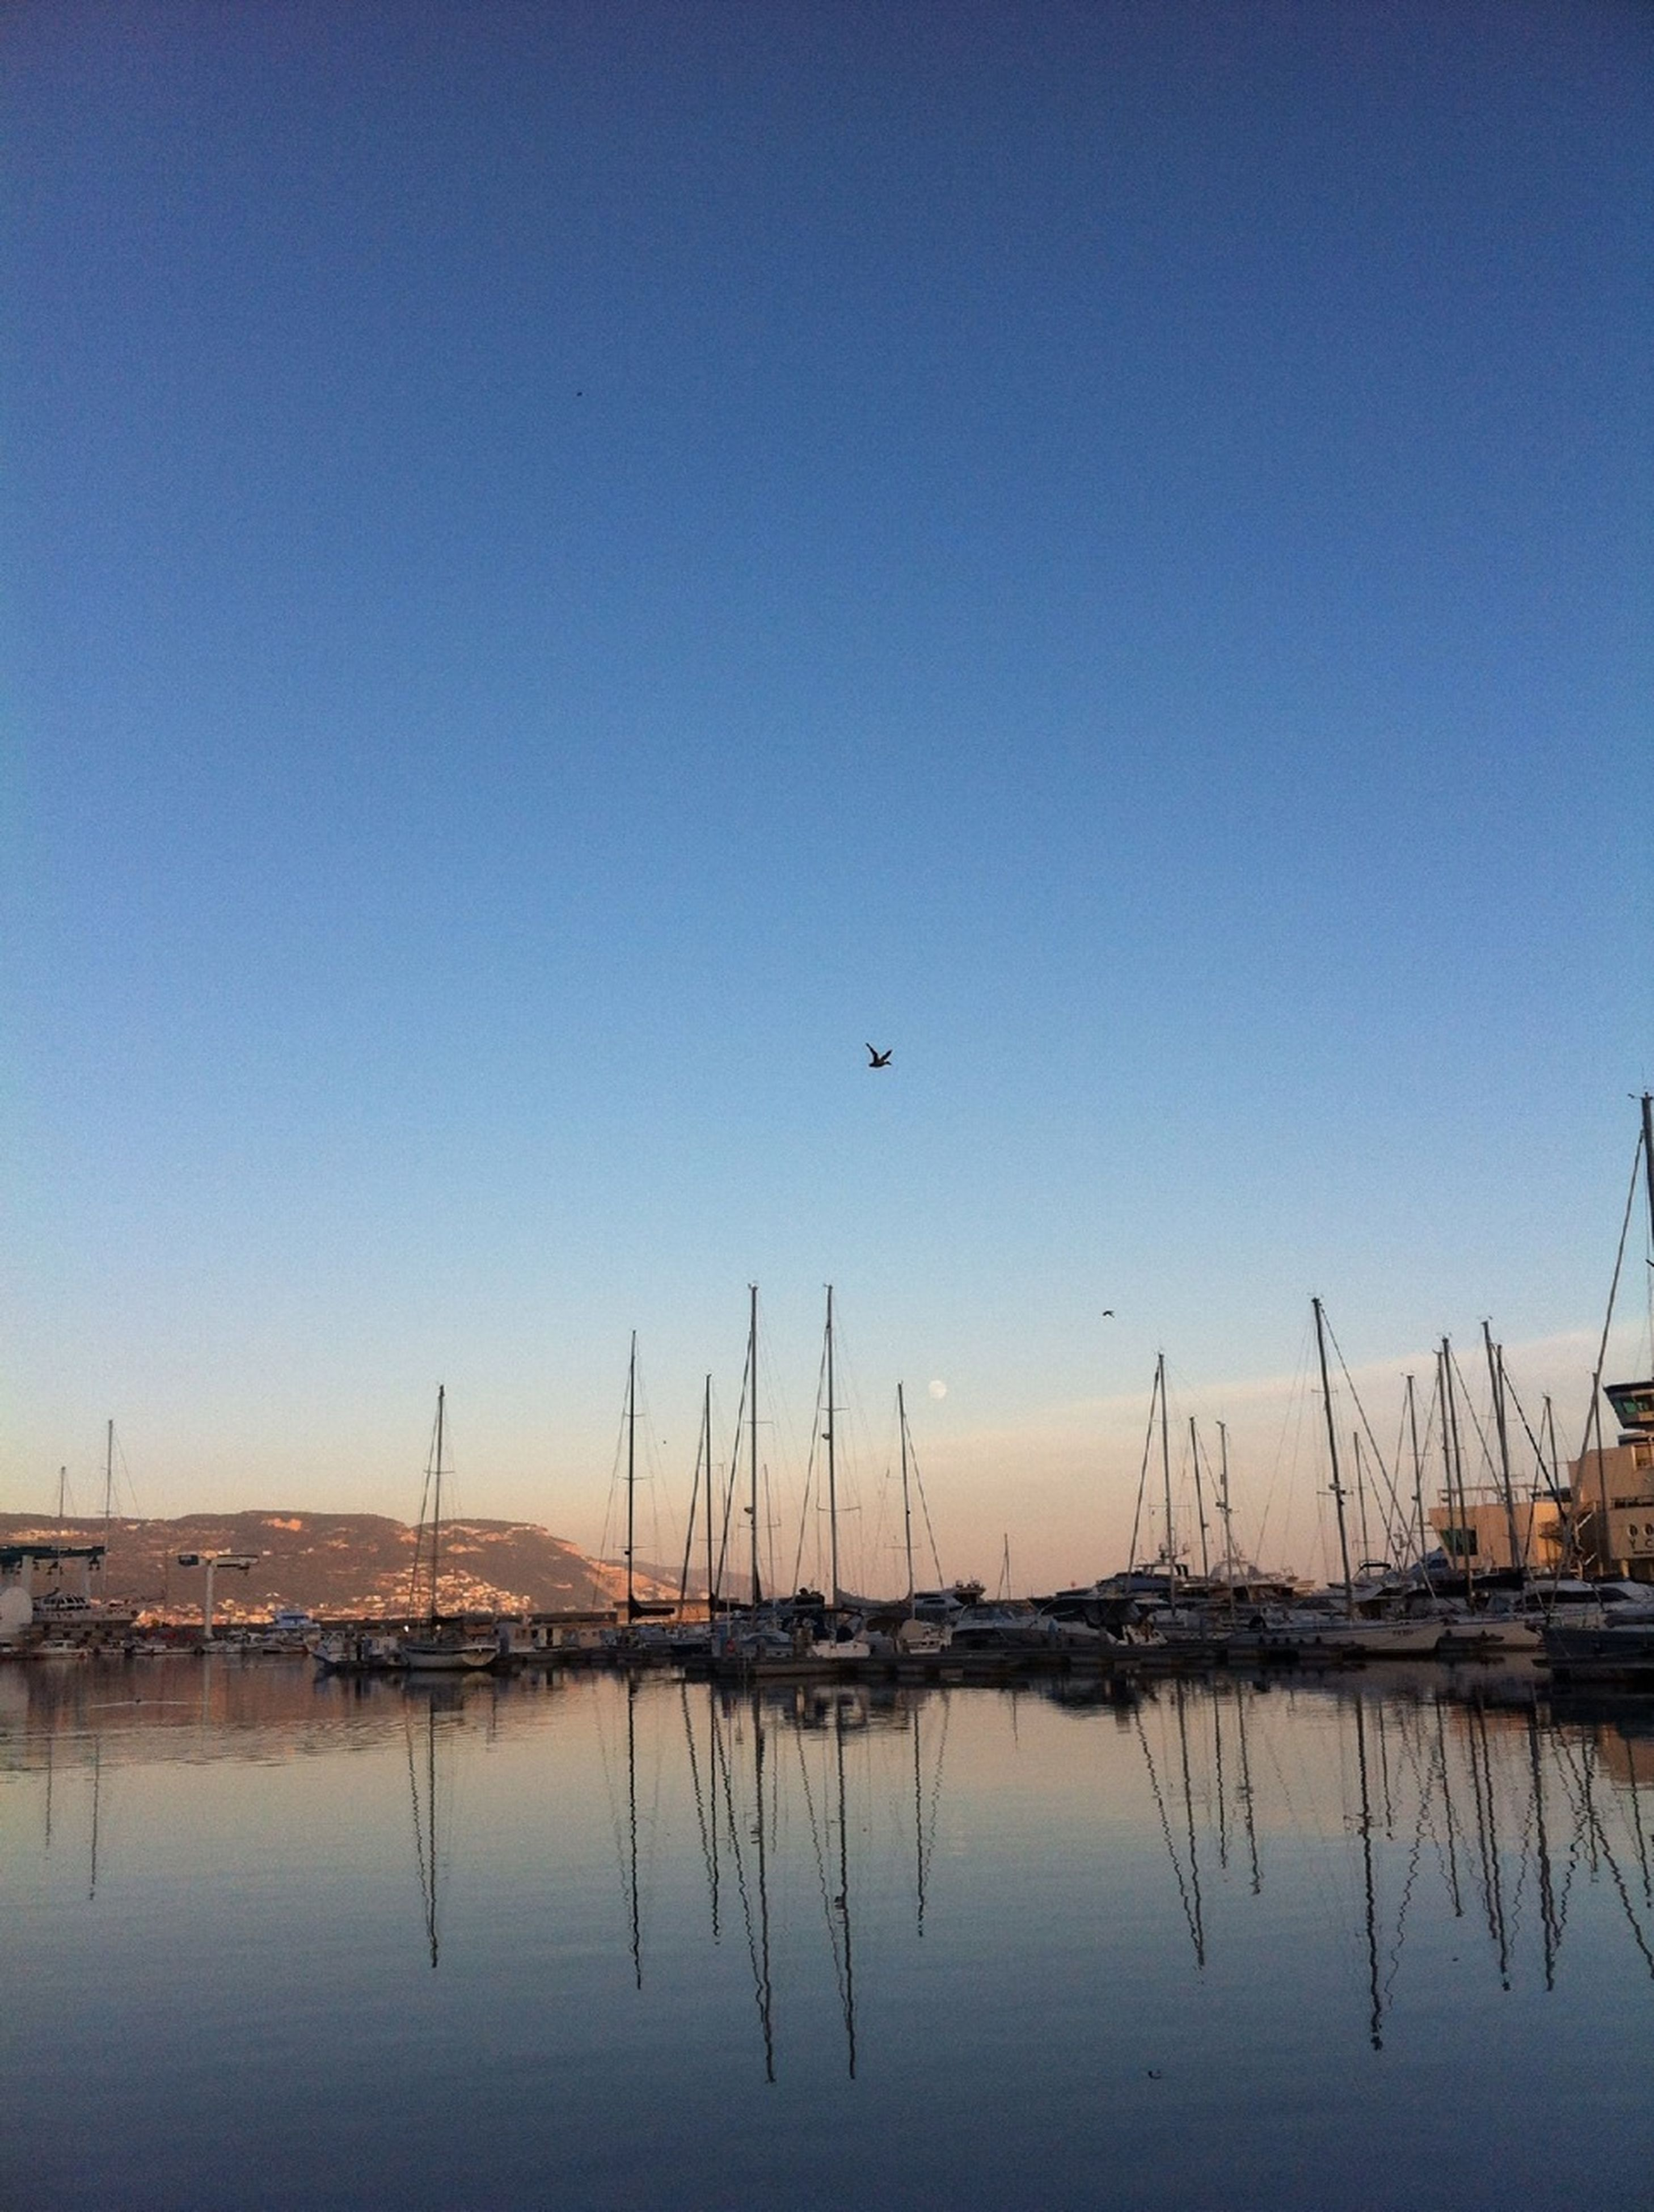 water, clear sky, copy space, reflection, waterfront, nautical vessel, blue, tranquil scene, tranquility, transportation, scenics, nature, sea, lake, beauty in nature, boat, sailboat, mode of transport, sunset, moored